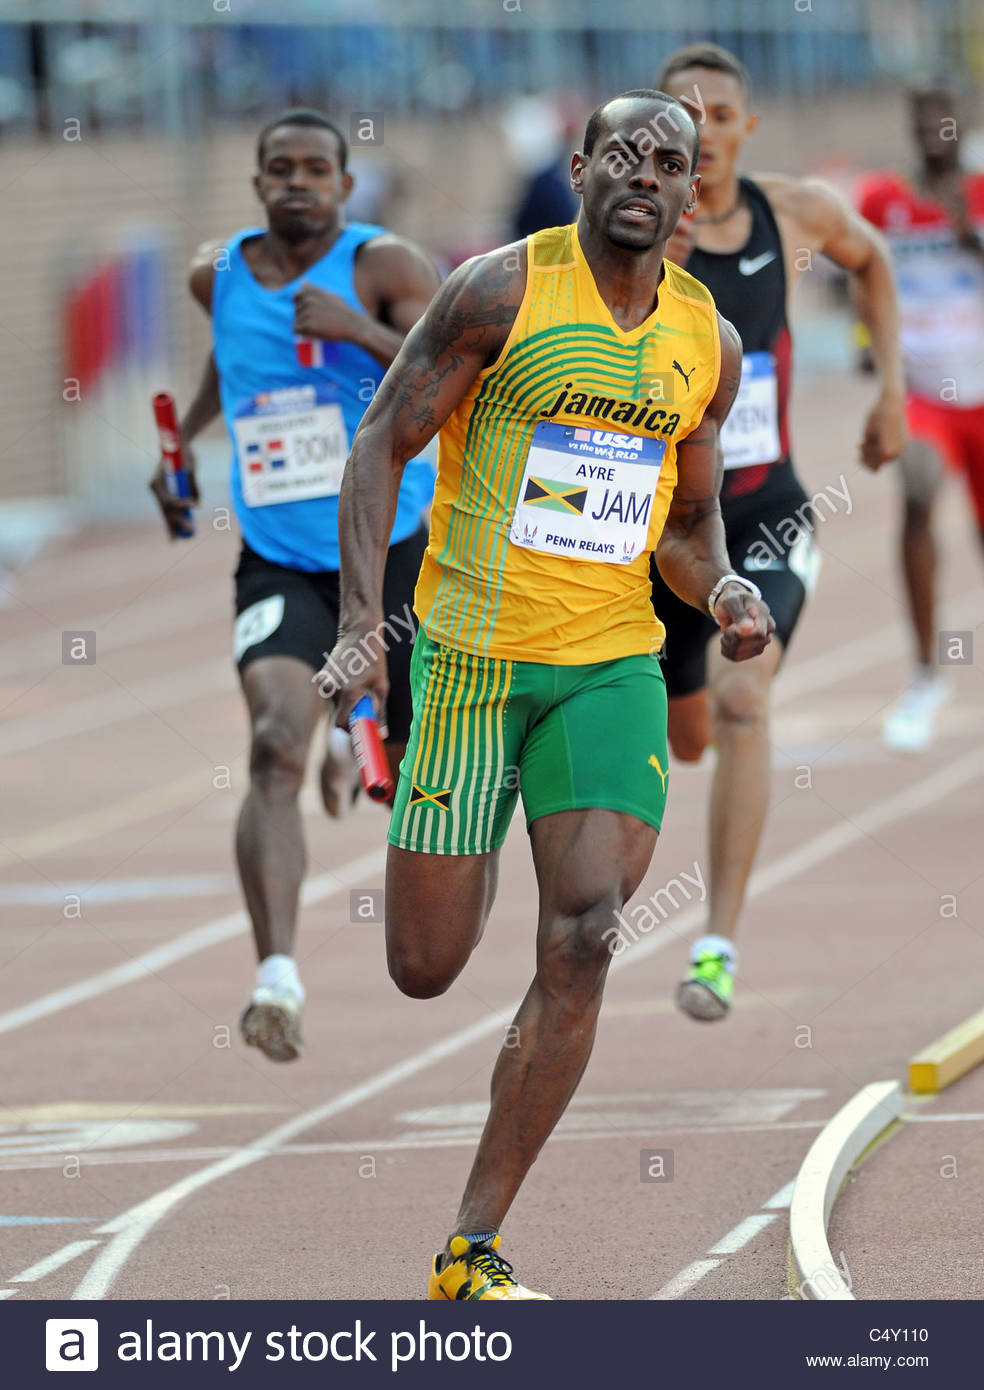 Jamaica's Sanjay Ayre runs in the 4x400 relay at the 2011 Penn Relays - Stock Image